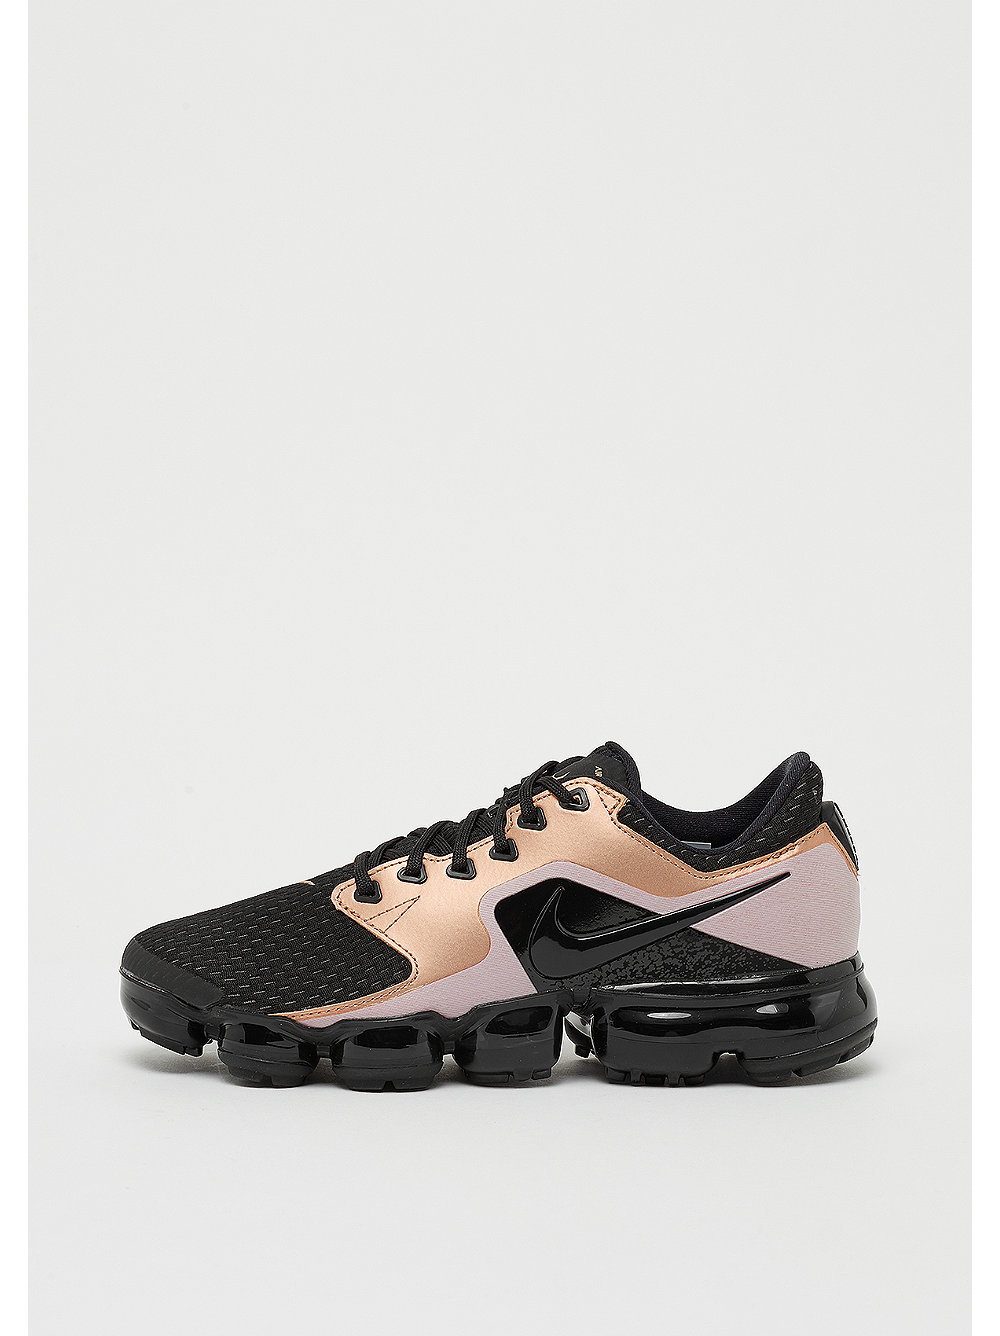 Wmns Air VaporMax black/black-black-mtlc red br...